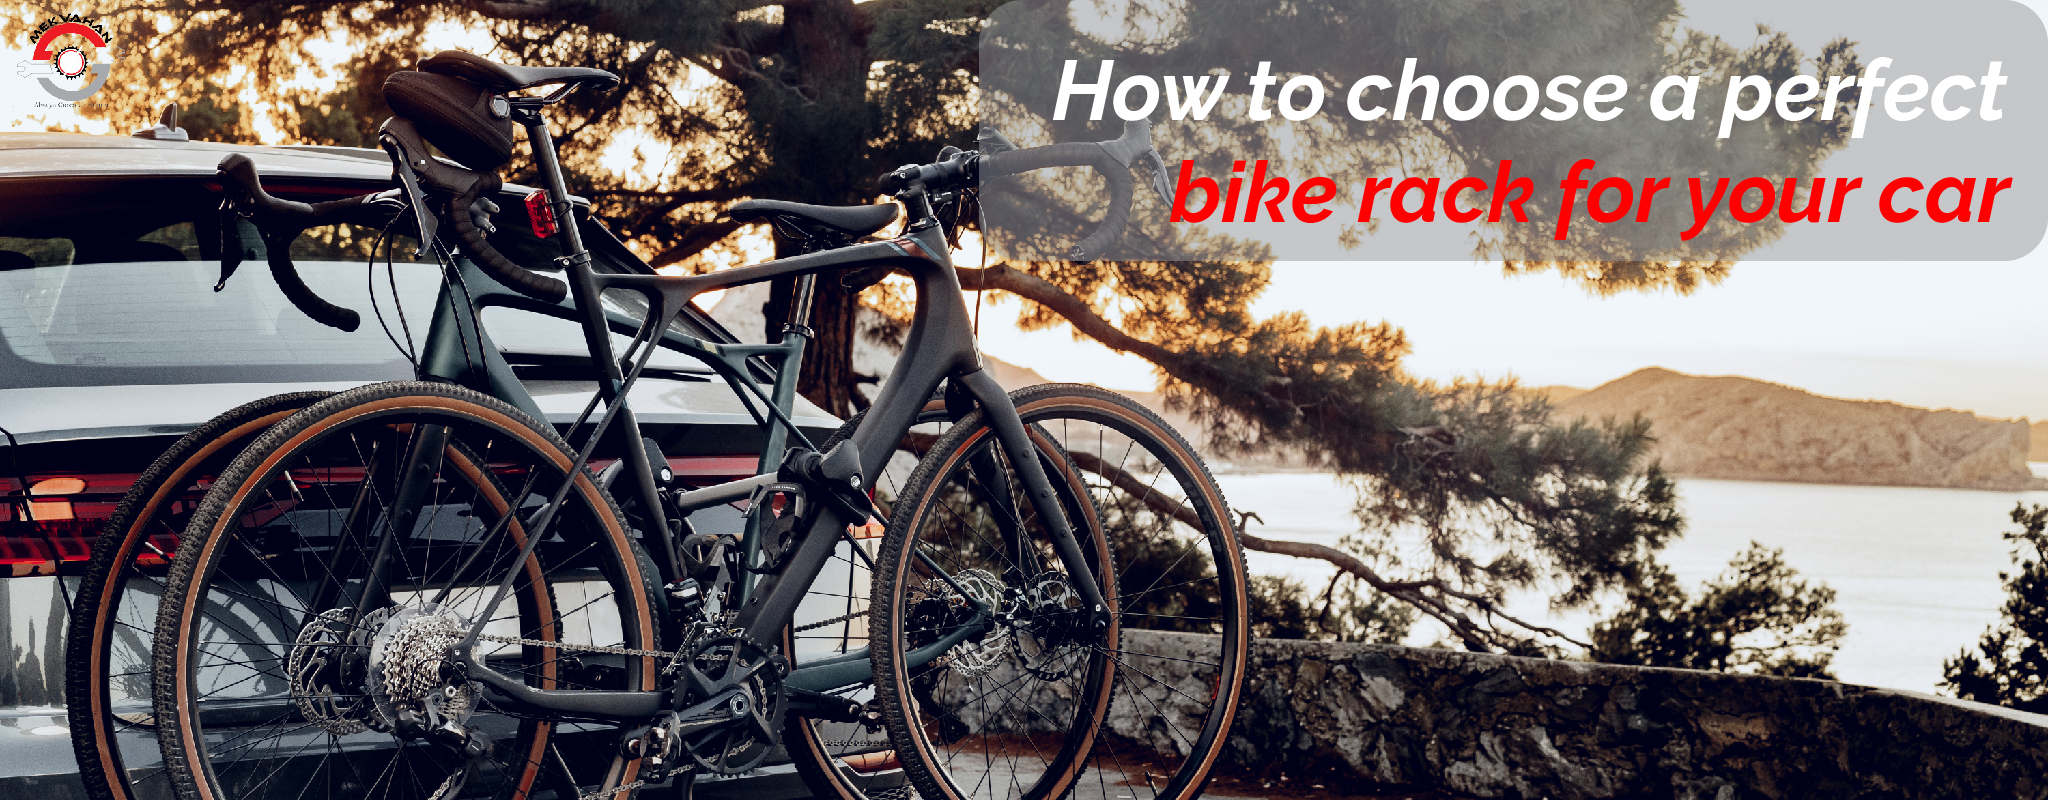 How to choose a perfect bike rack for your car